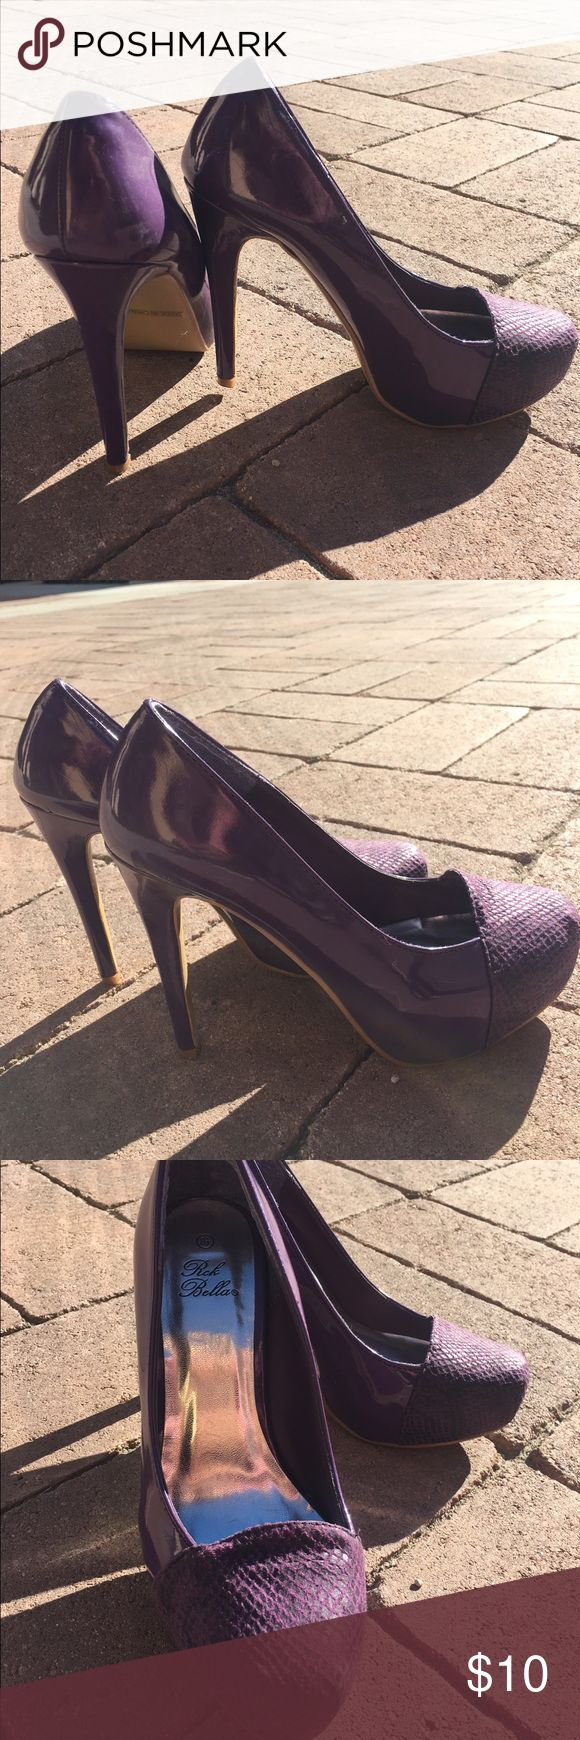 Royal Purple front print high heels If you're a bold kind of girl these shoes are so for you, worn twice but got many compliments each time. They are a total statement piece that can be added to a number of outfits. The front has a subtle animal print in black that adds a really nice flirtatious touch:) Shoes Heels